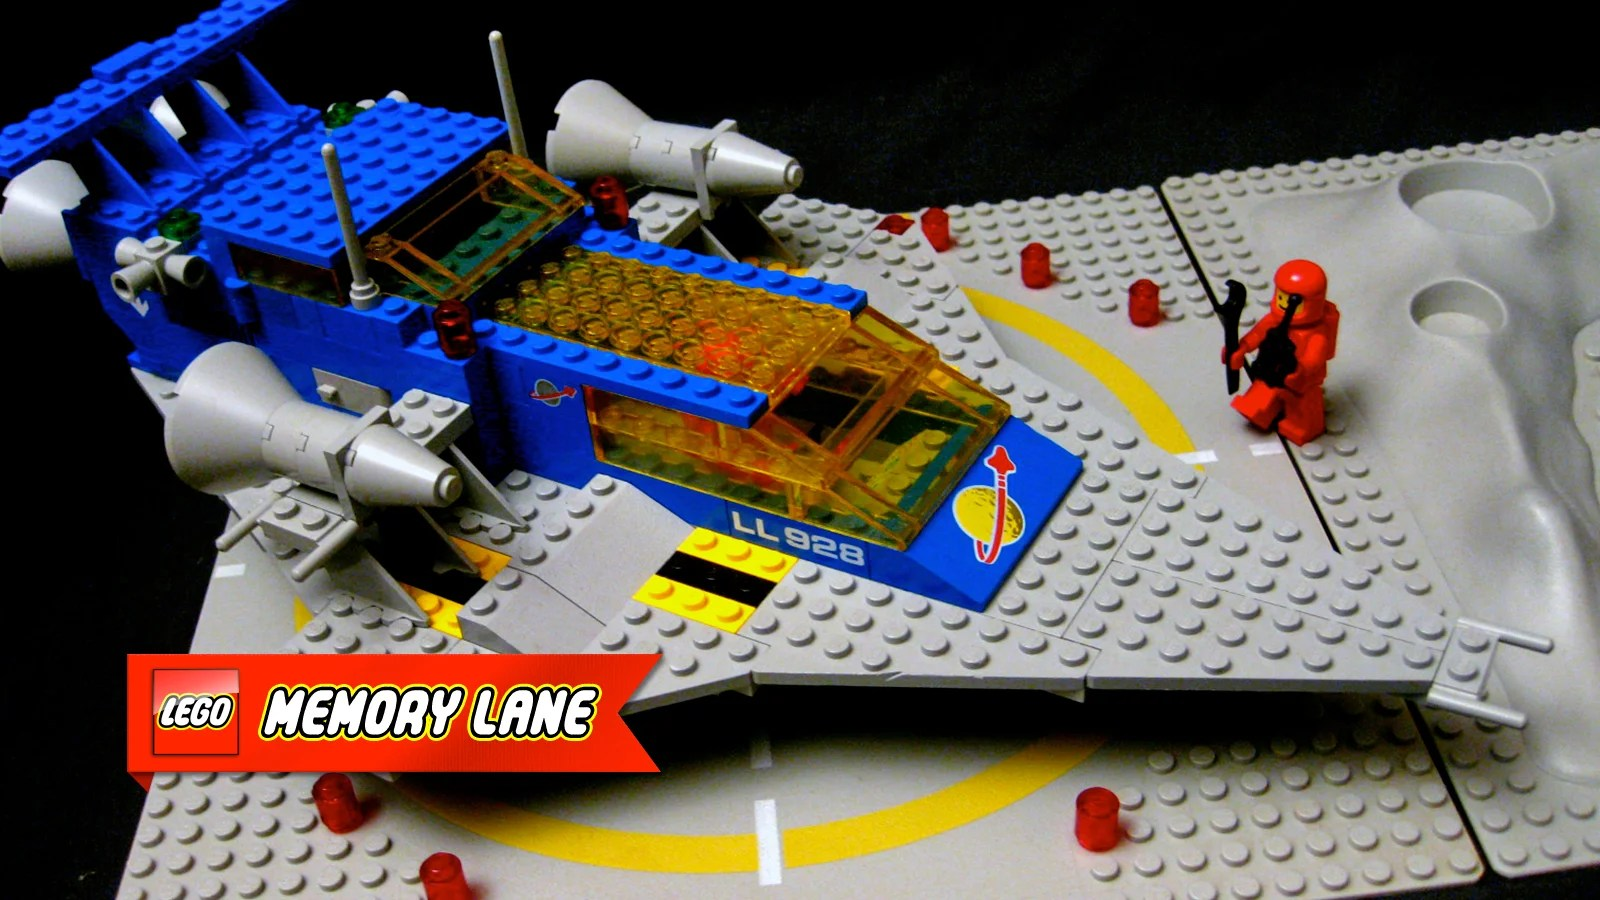 Secret underground vault contains all Lego sets in history